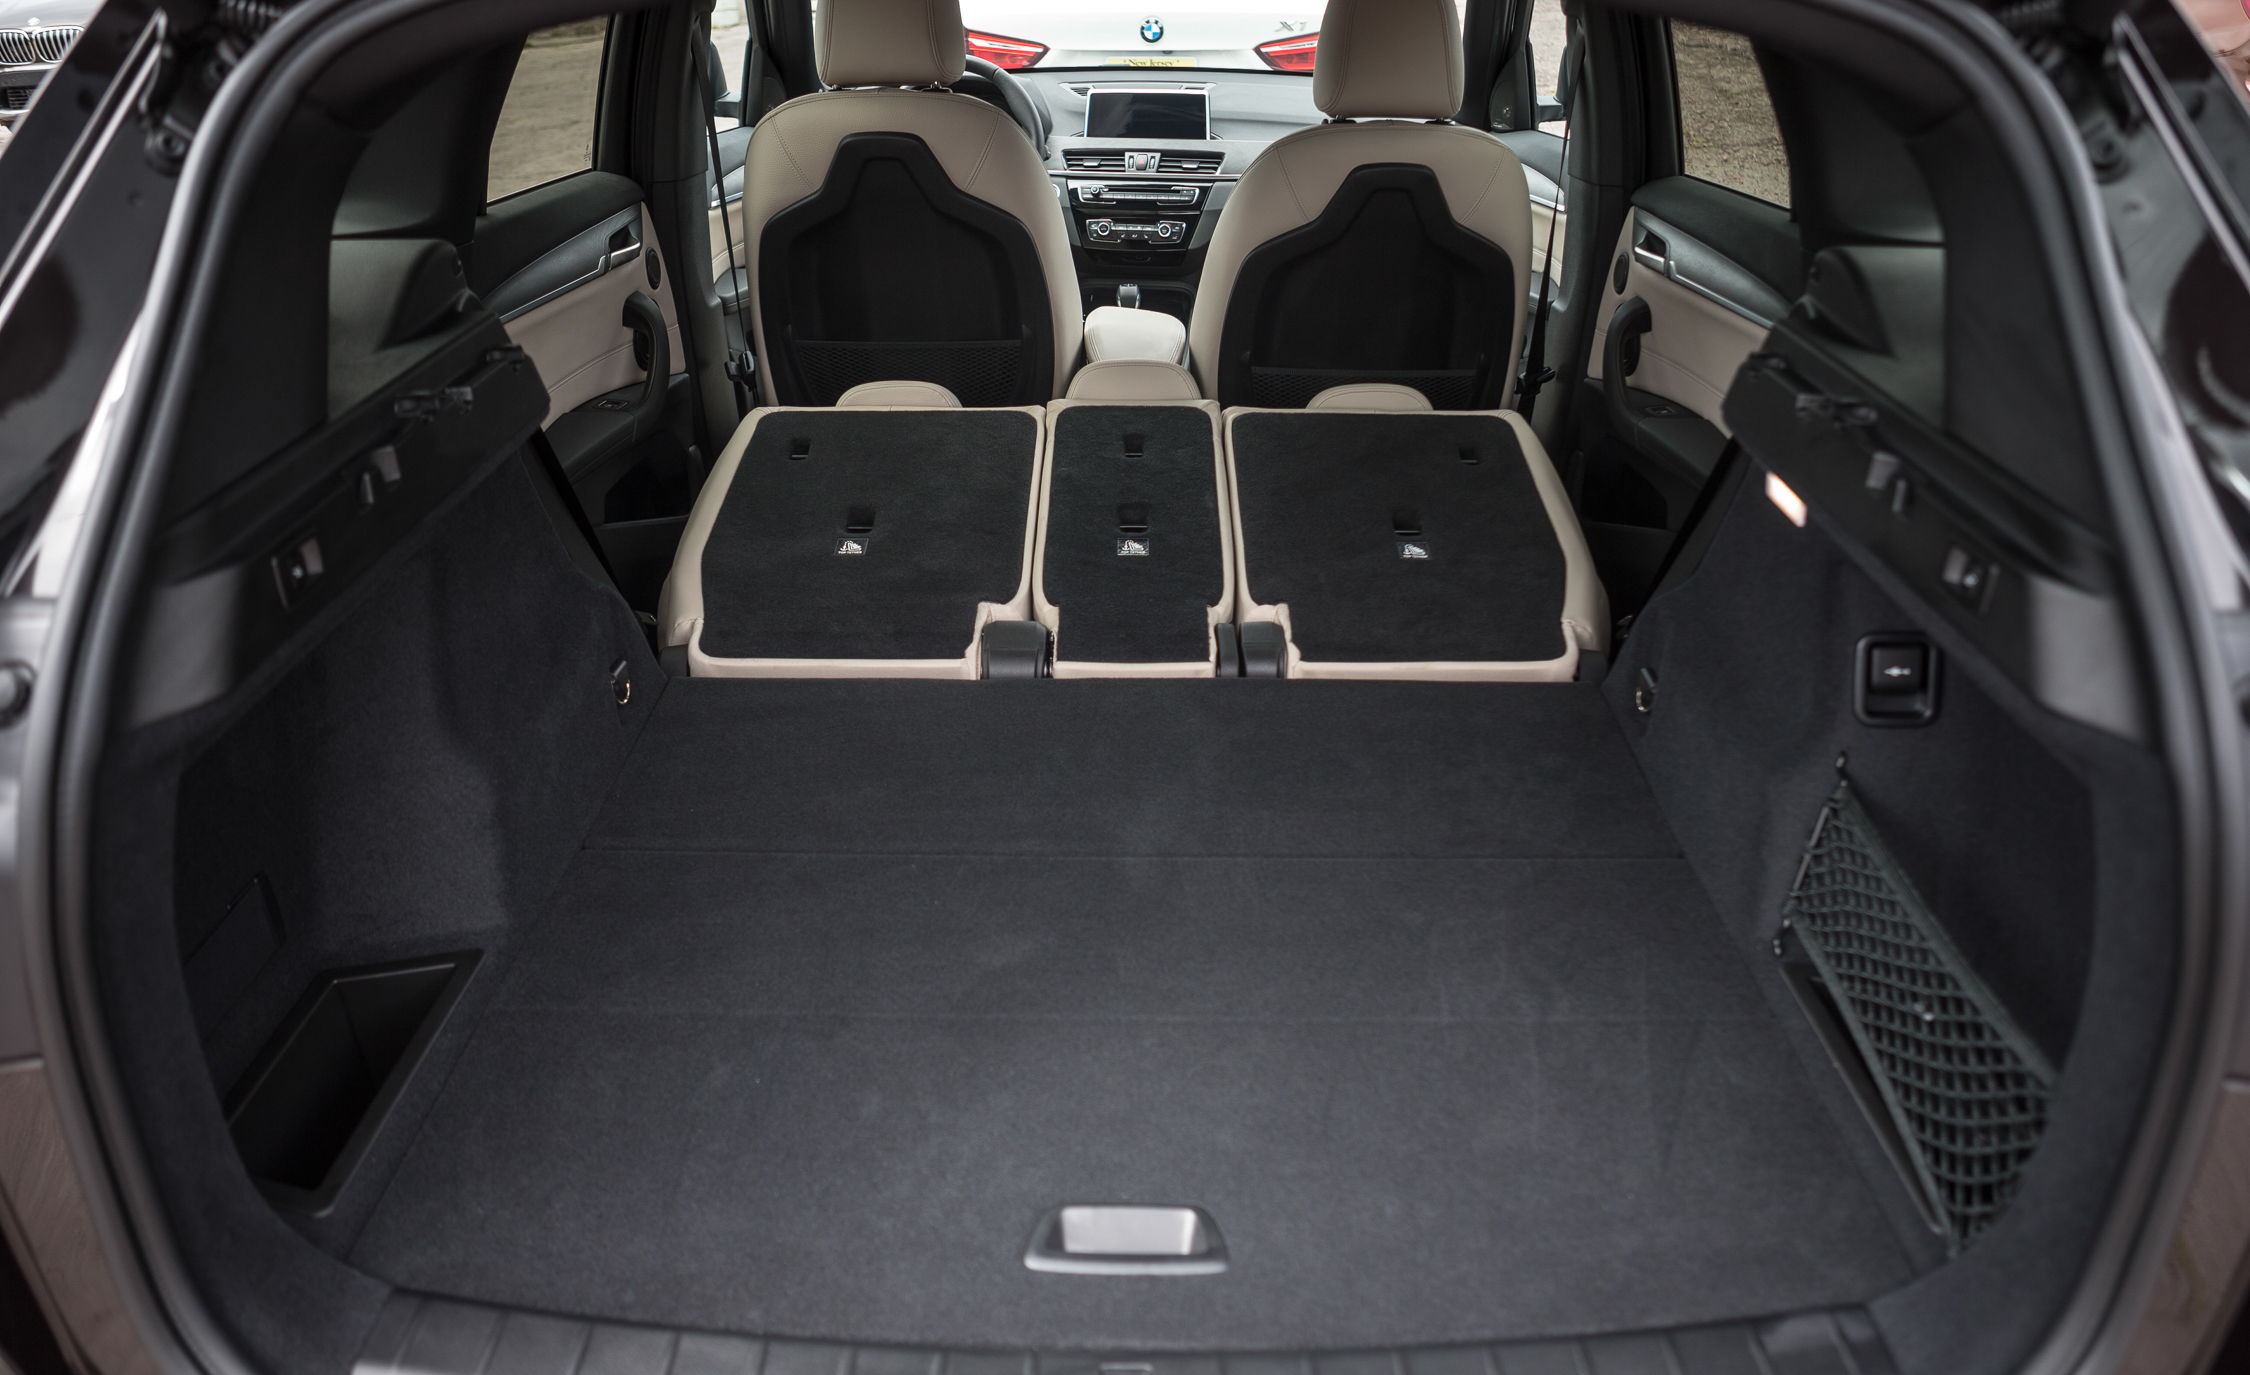 2016 BMW X1 Interior View Cargo Seats Folded Down (Photo 22 of 36)